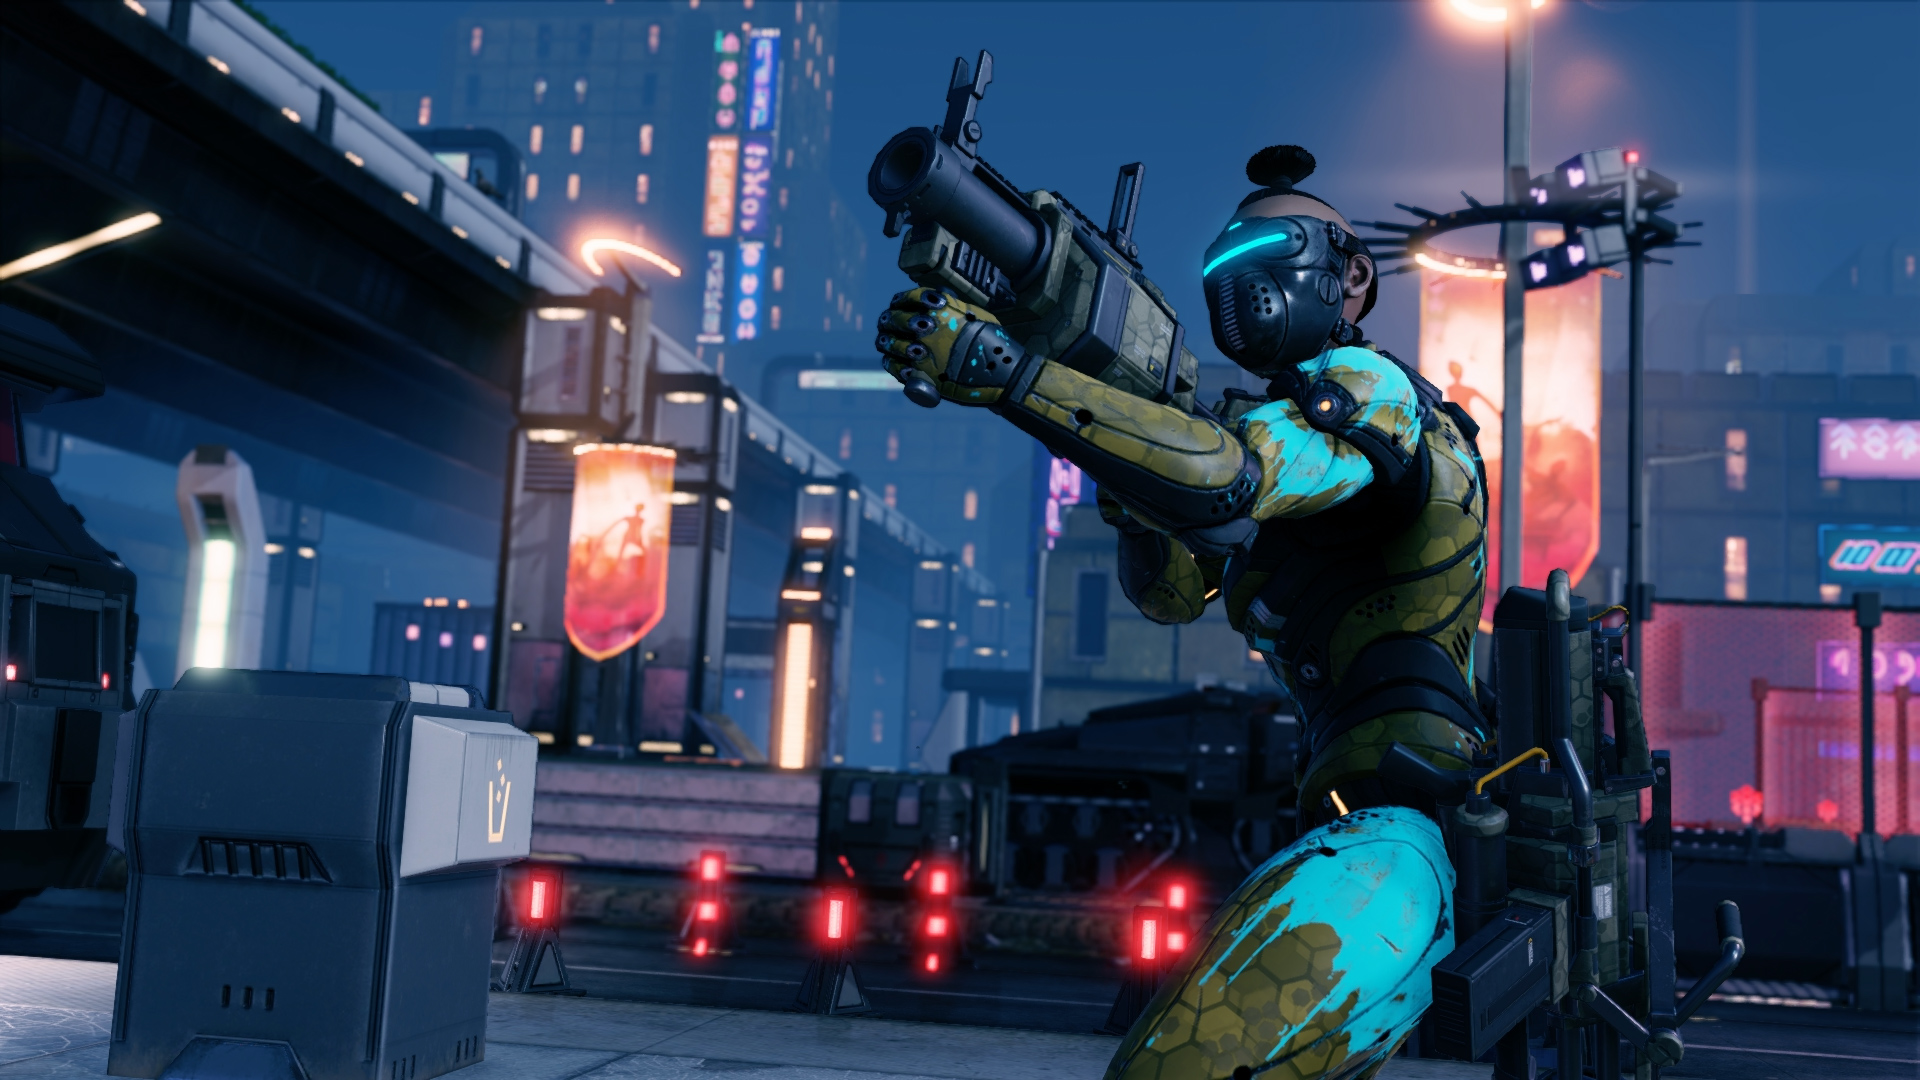 The Best 'XCOM' Mod Is Getting a Sequel for 'XCOM 2'